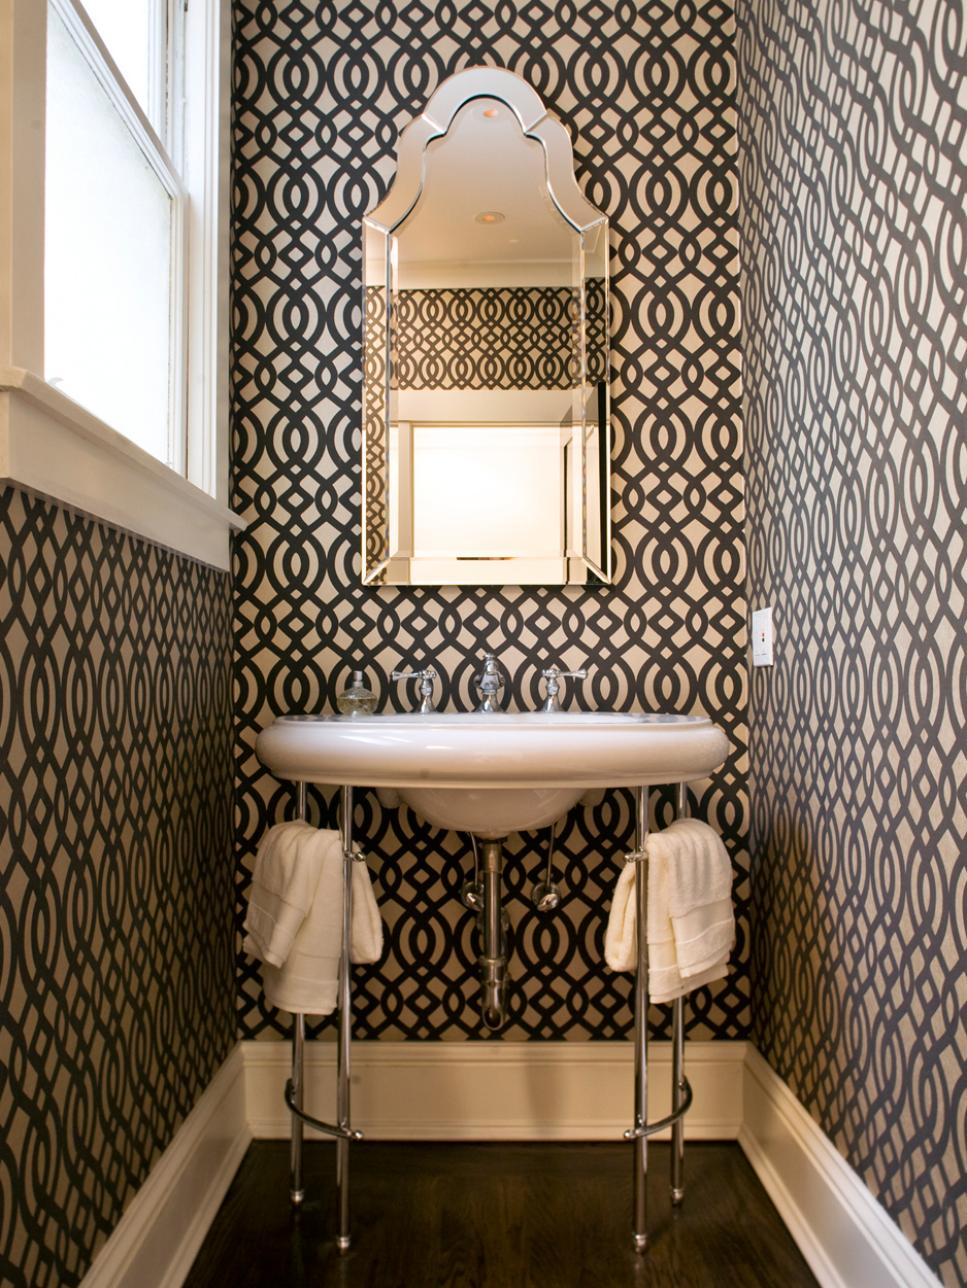 Bathroom Design Ideas Tile 20 small bathroom design ideas | hgtv